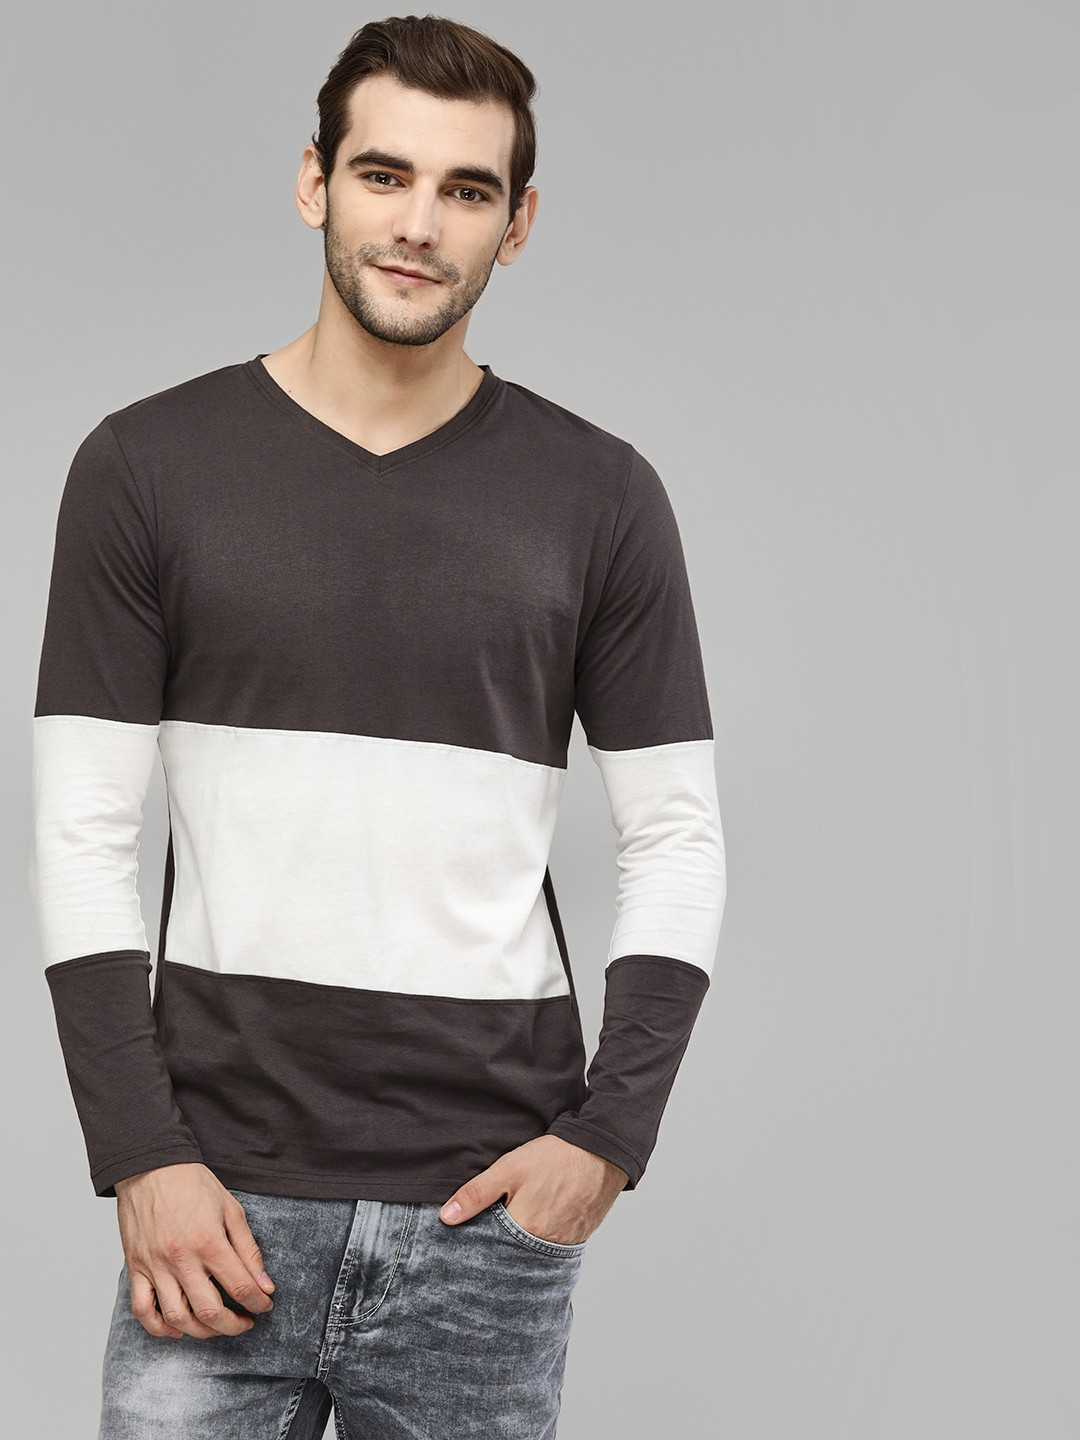 Kultprit Multi Colour Block Long Sleeve T-Shirt 1